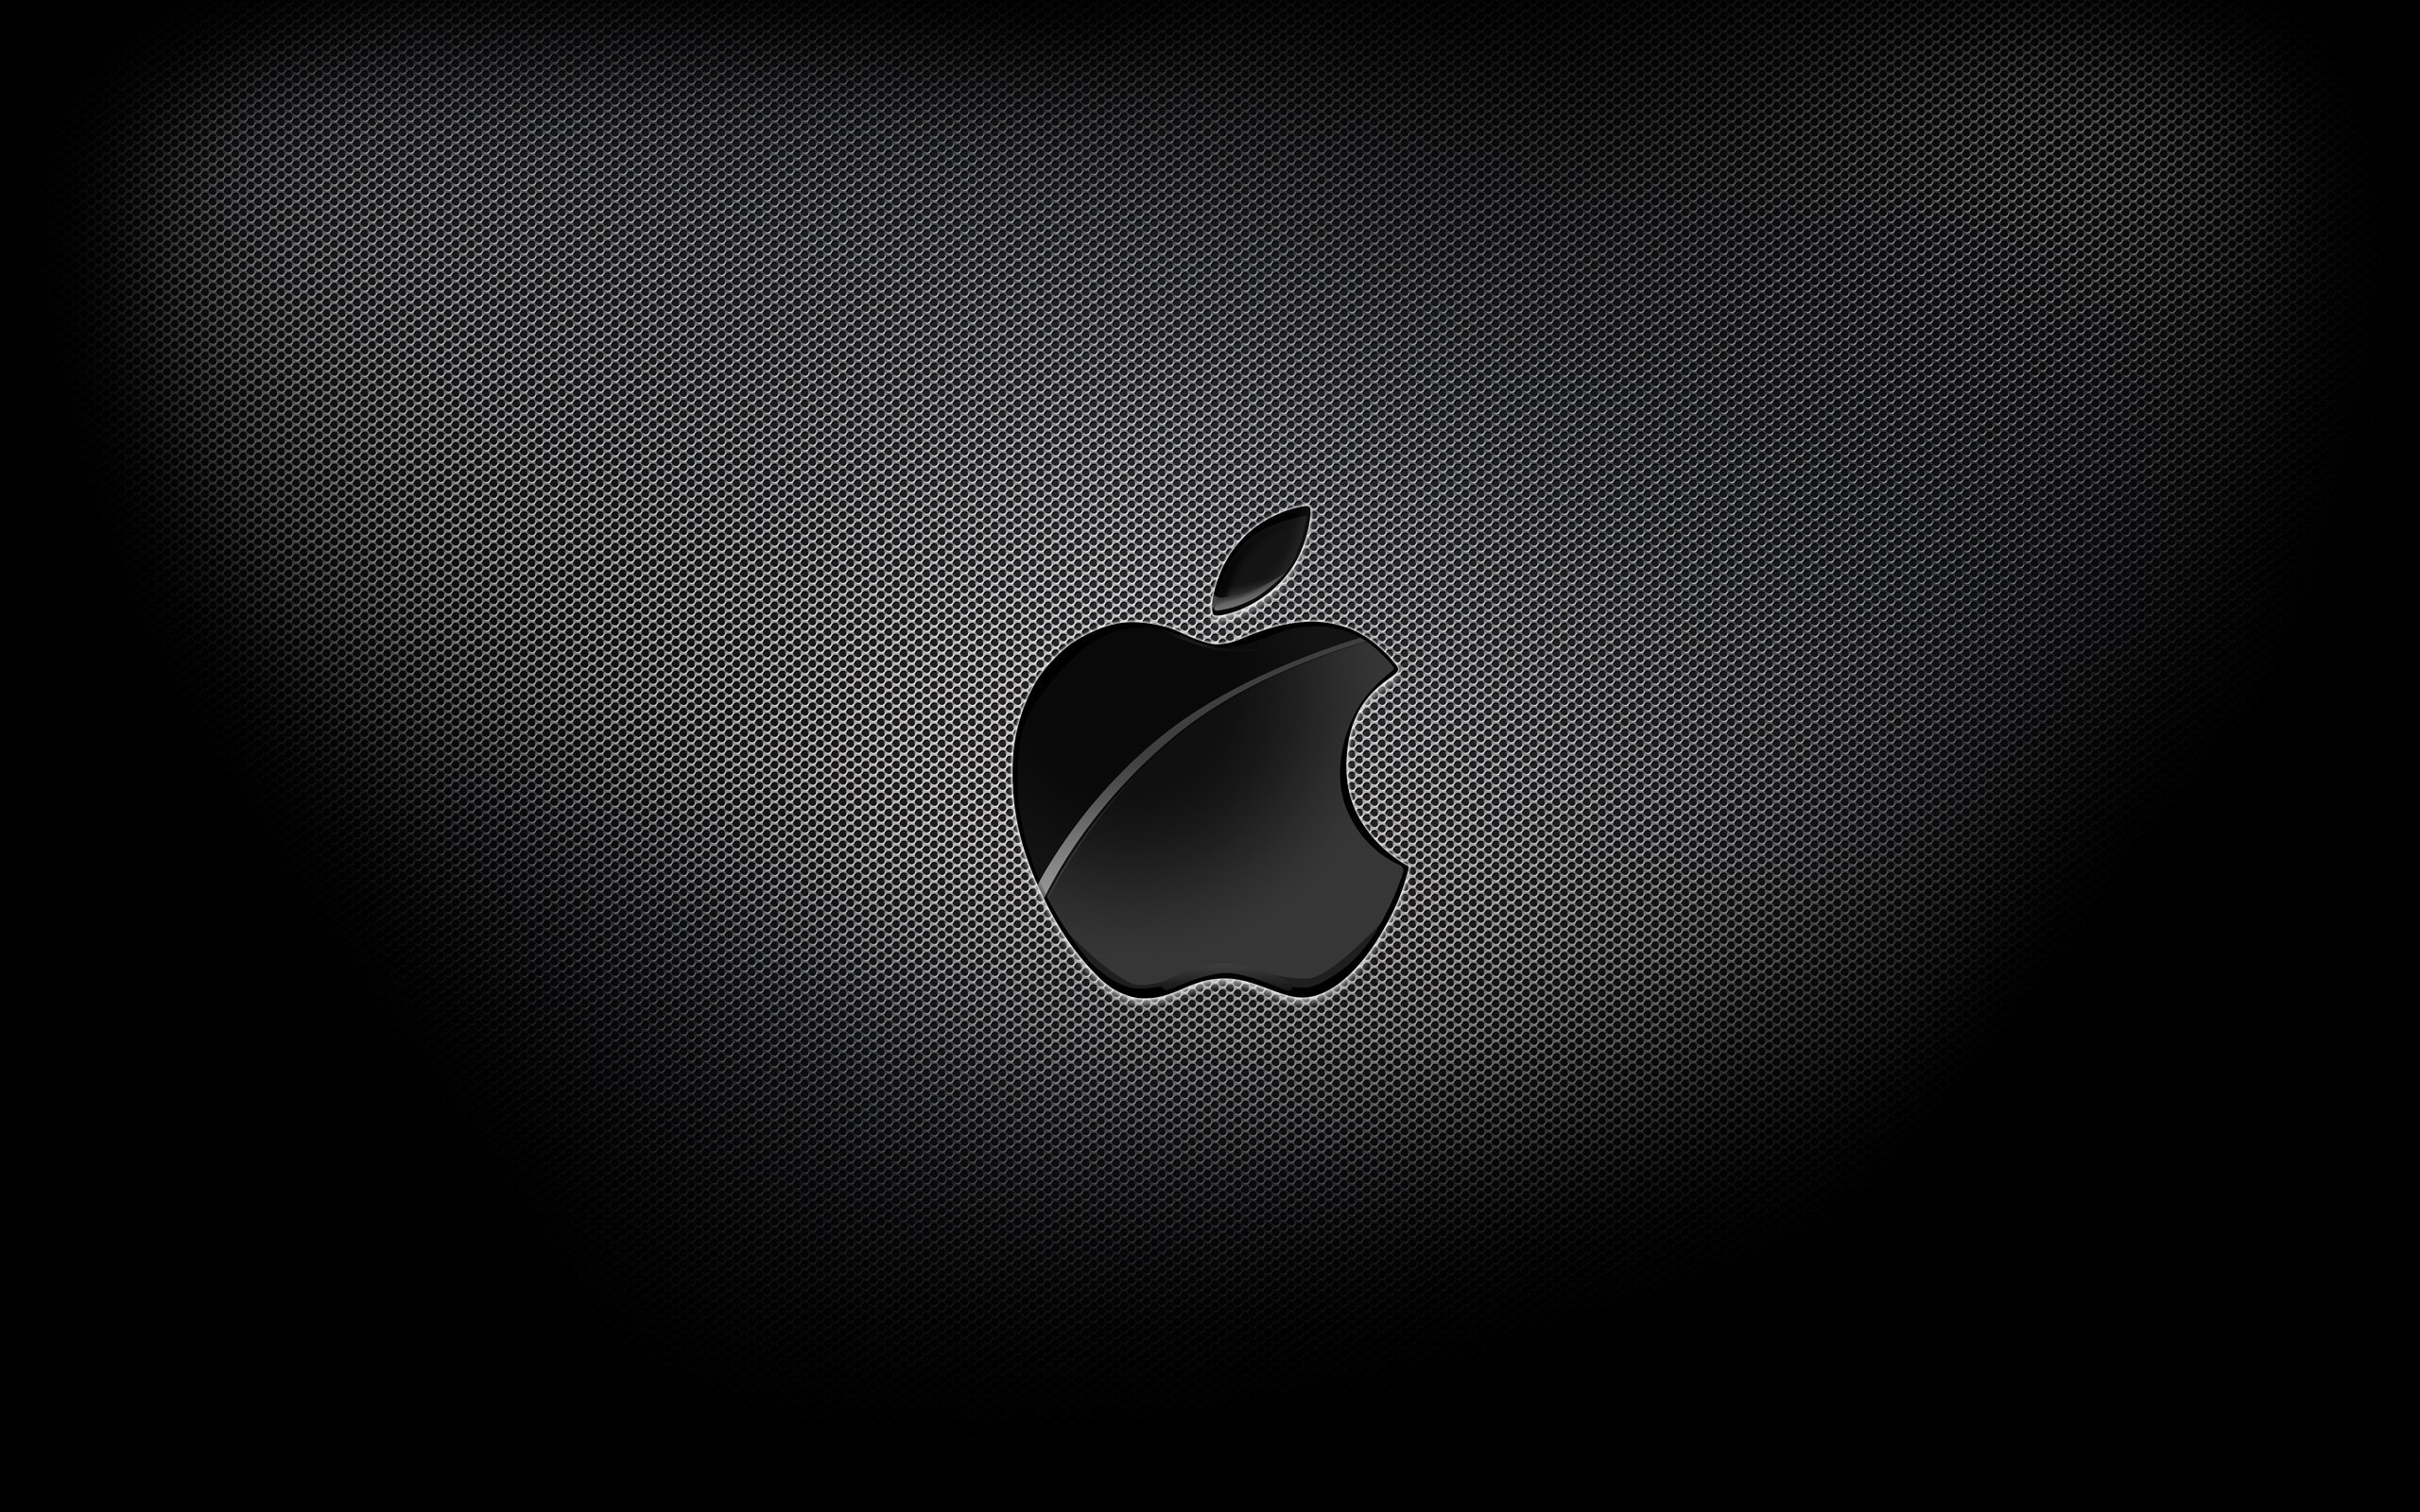 logo Mac Wallpapers iMac Wallpapers Retina MacBook Pro 2560x1600